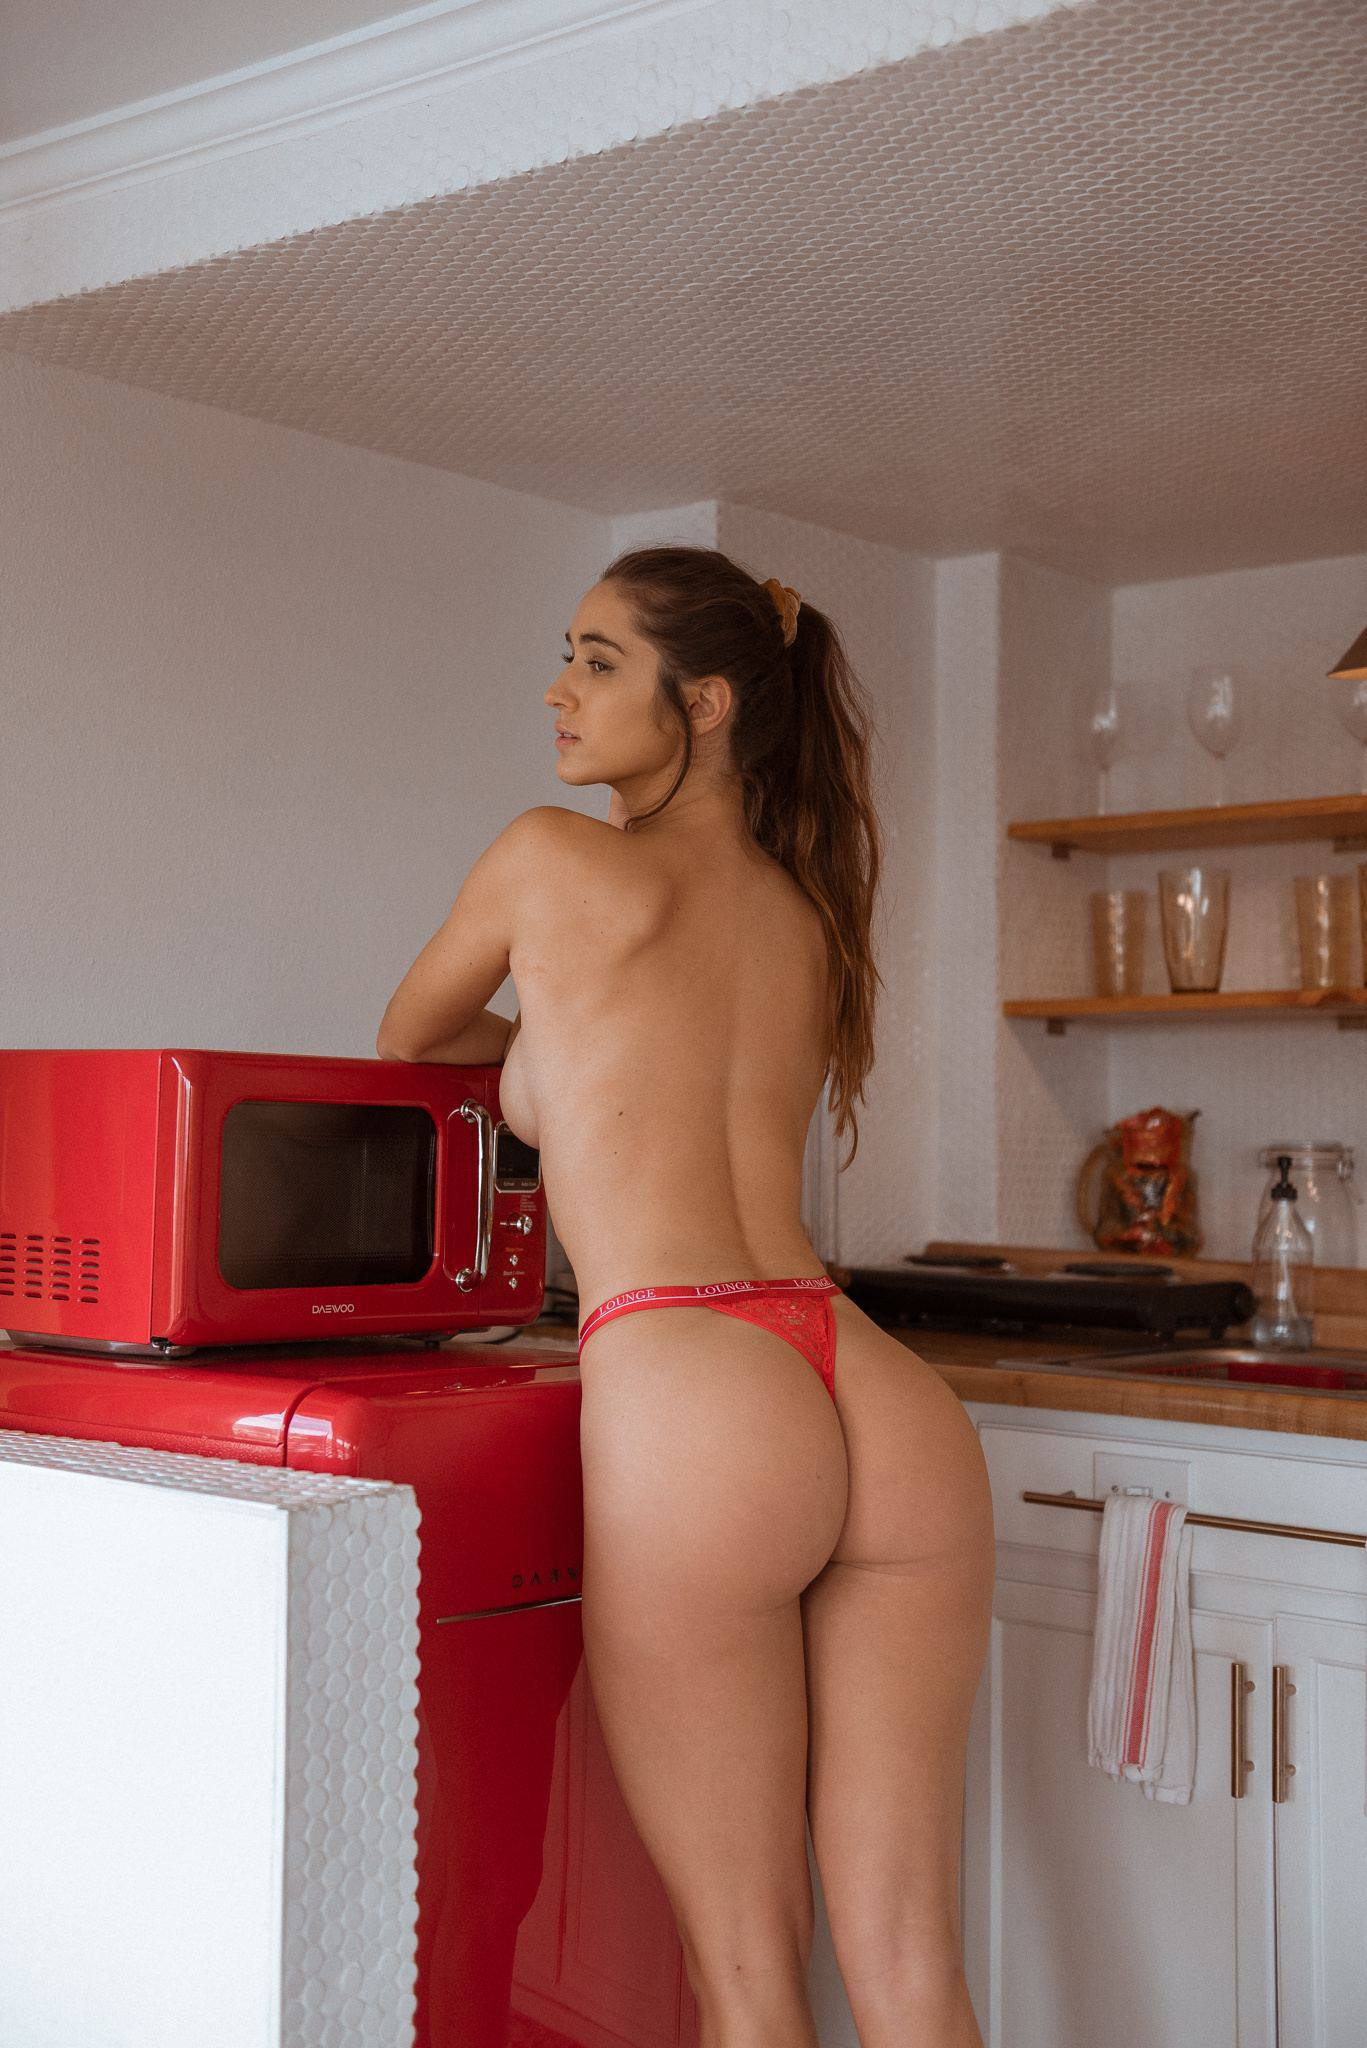 Natalie Roush – Hot Ass And Boobs In Sexy Toples Photoshoot 0004